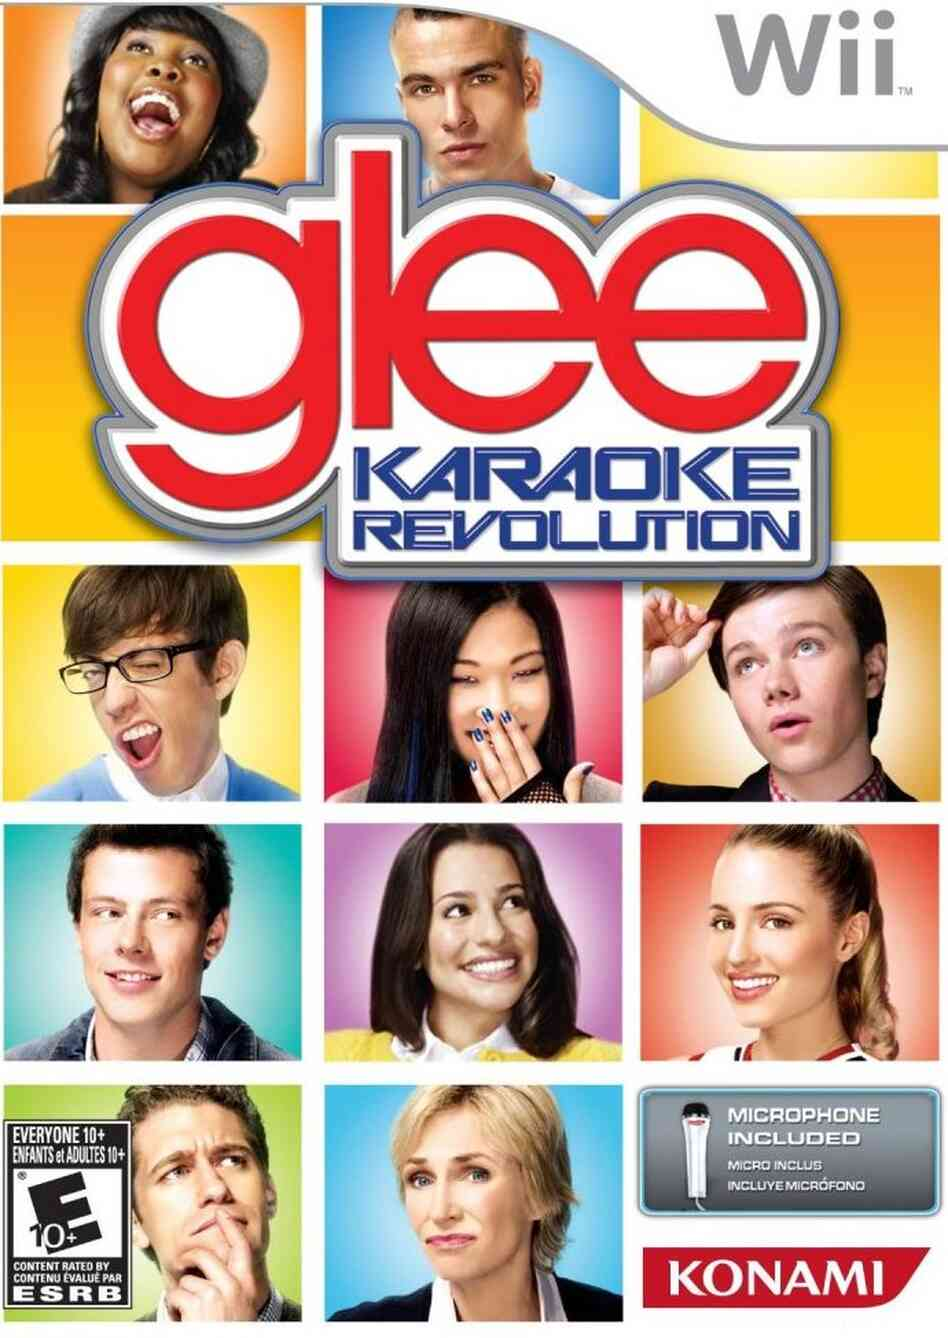 The cover of Glee Karaoke Revolution.